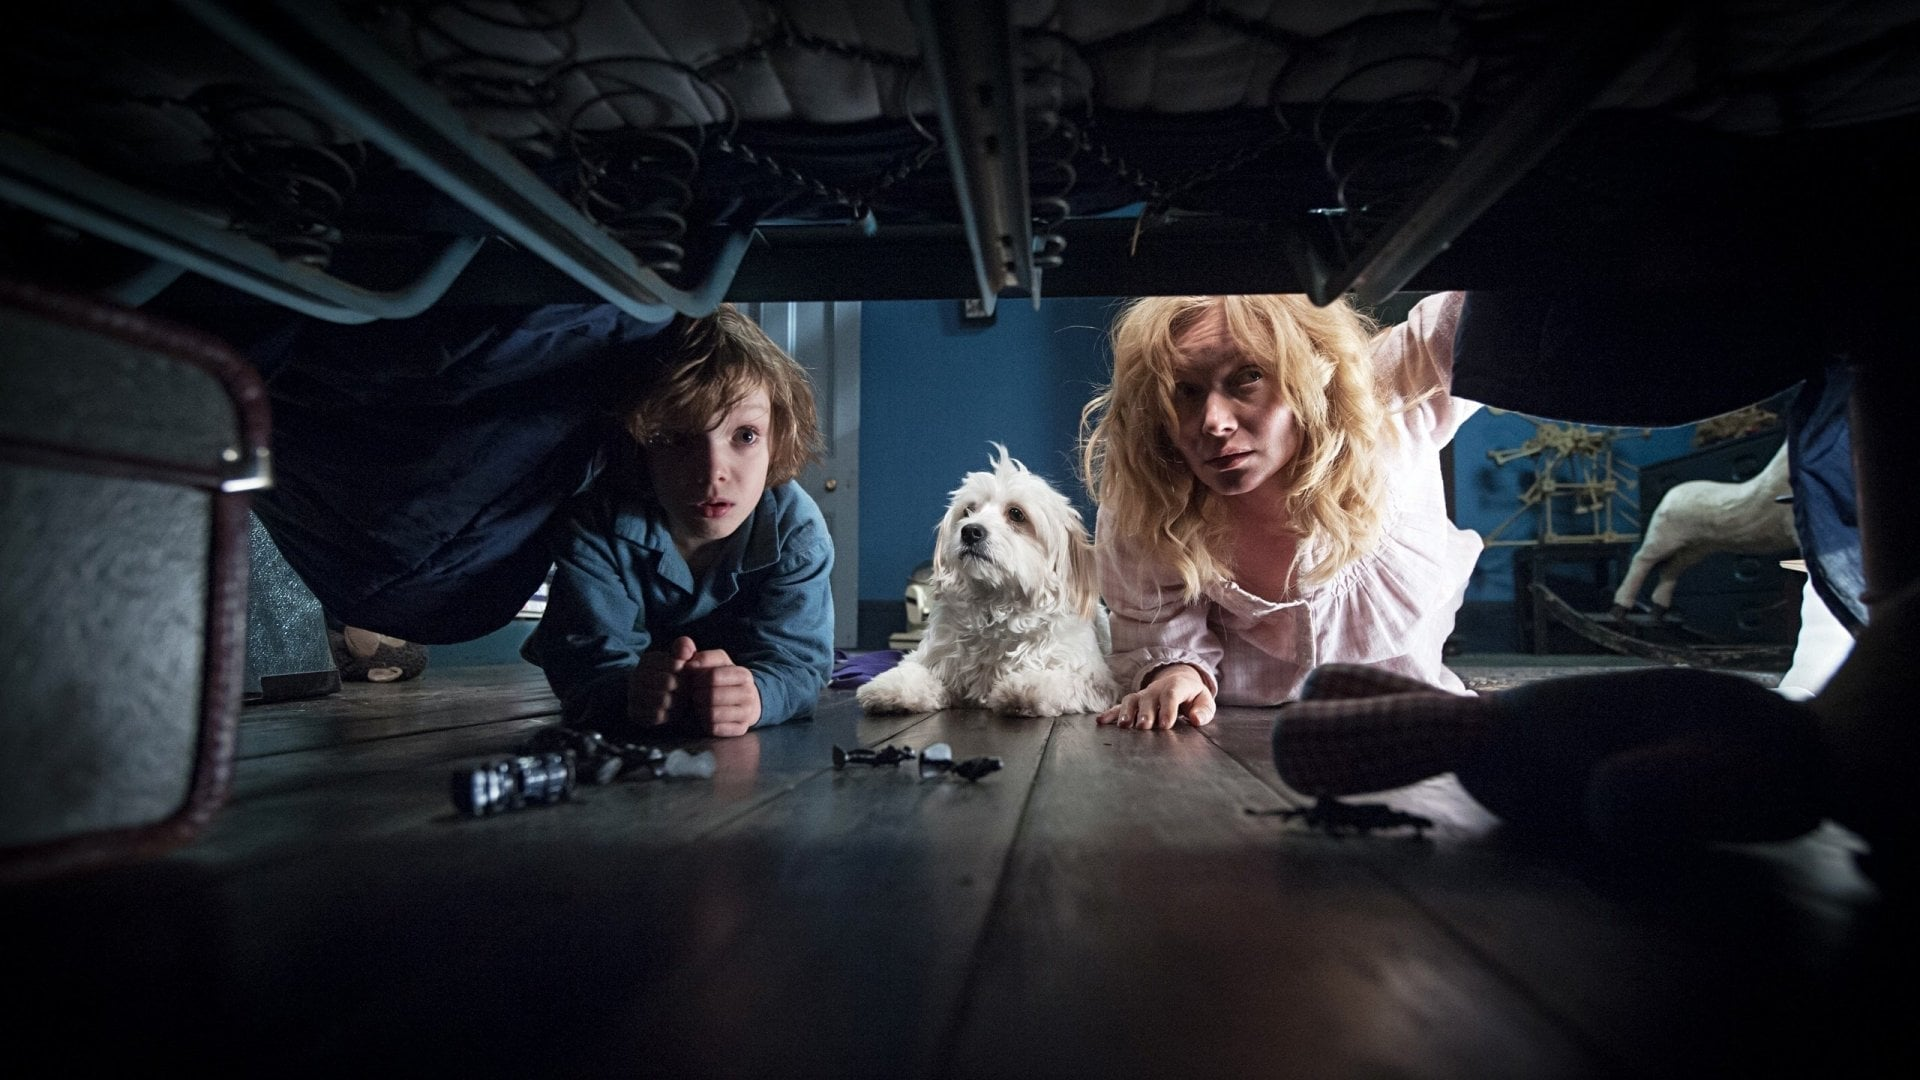 The Babadook is the best horror film of the past decade